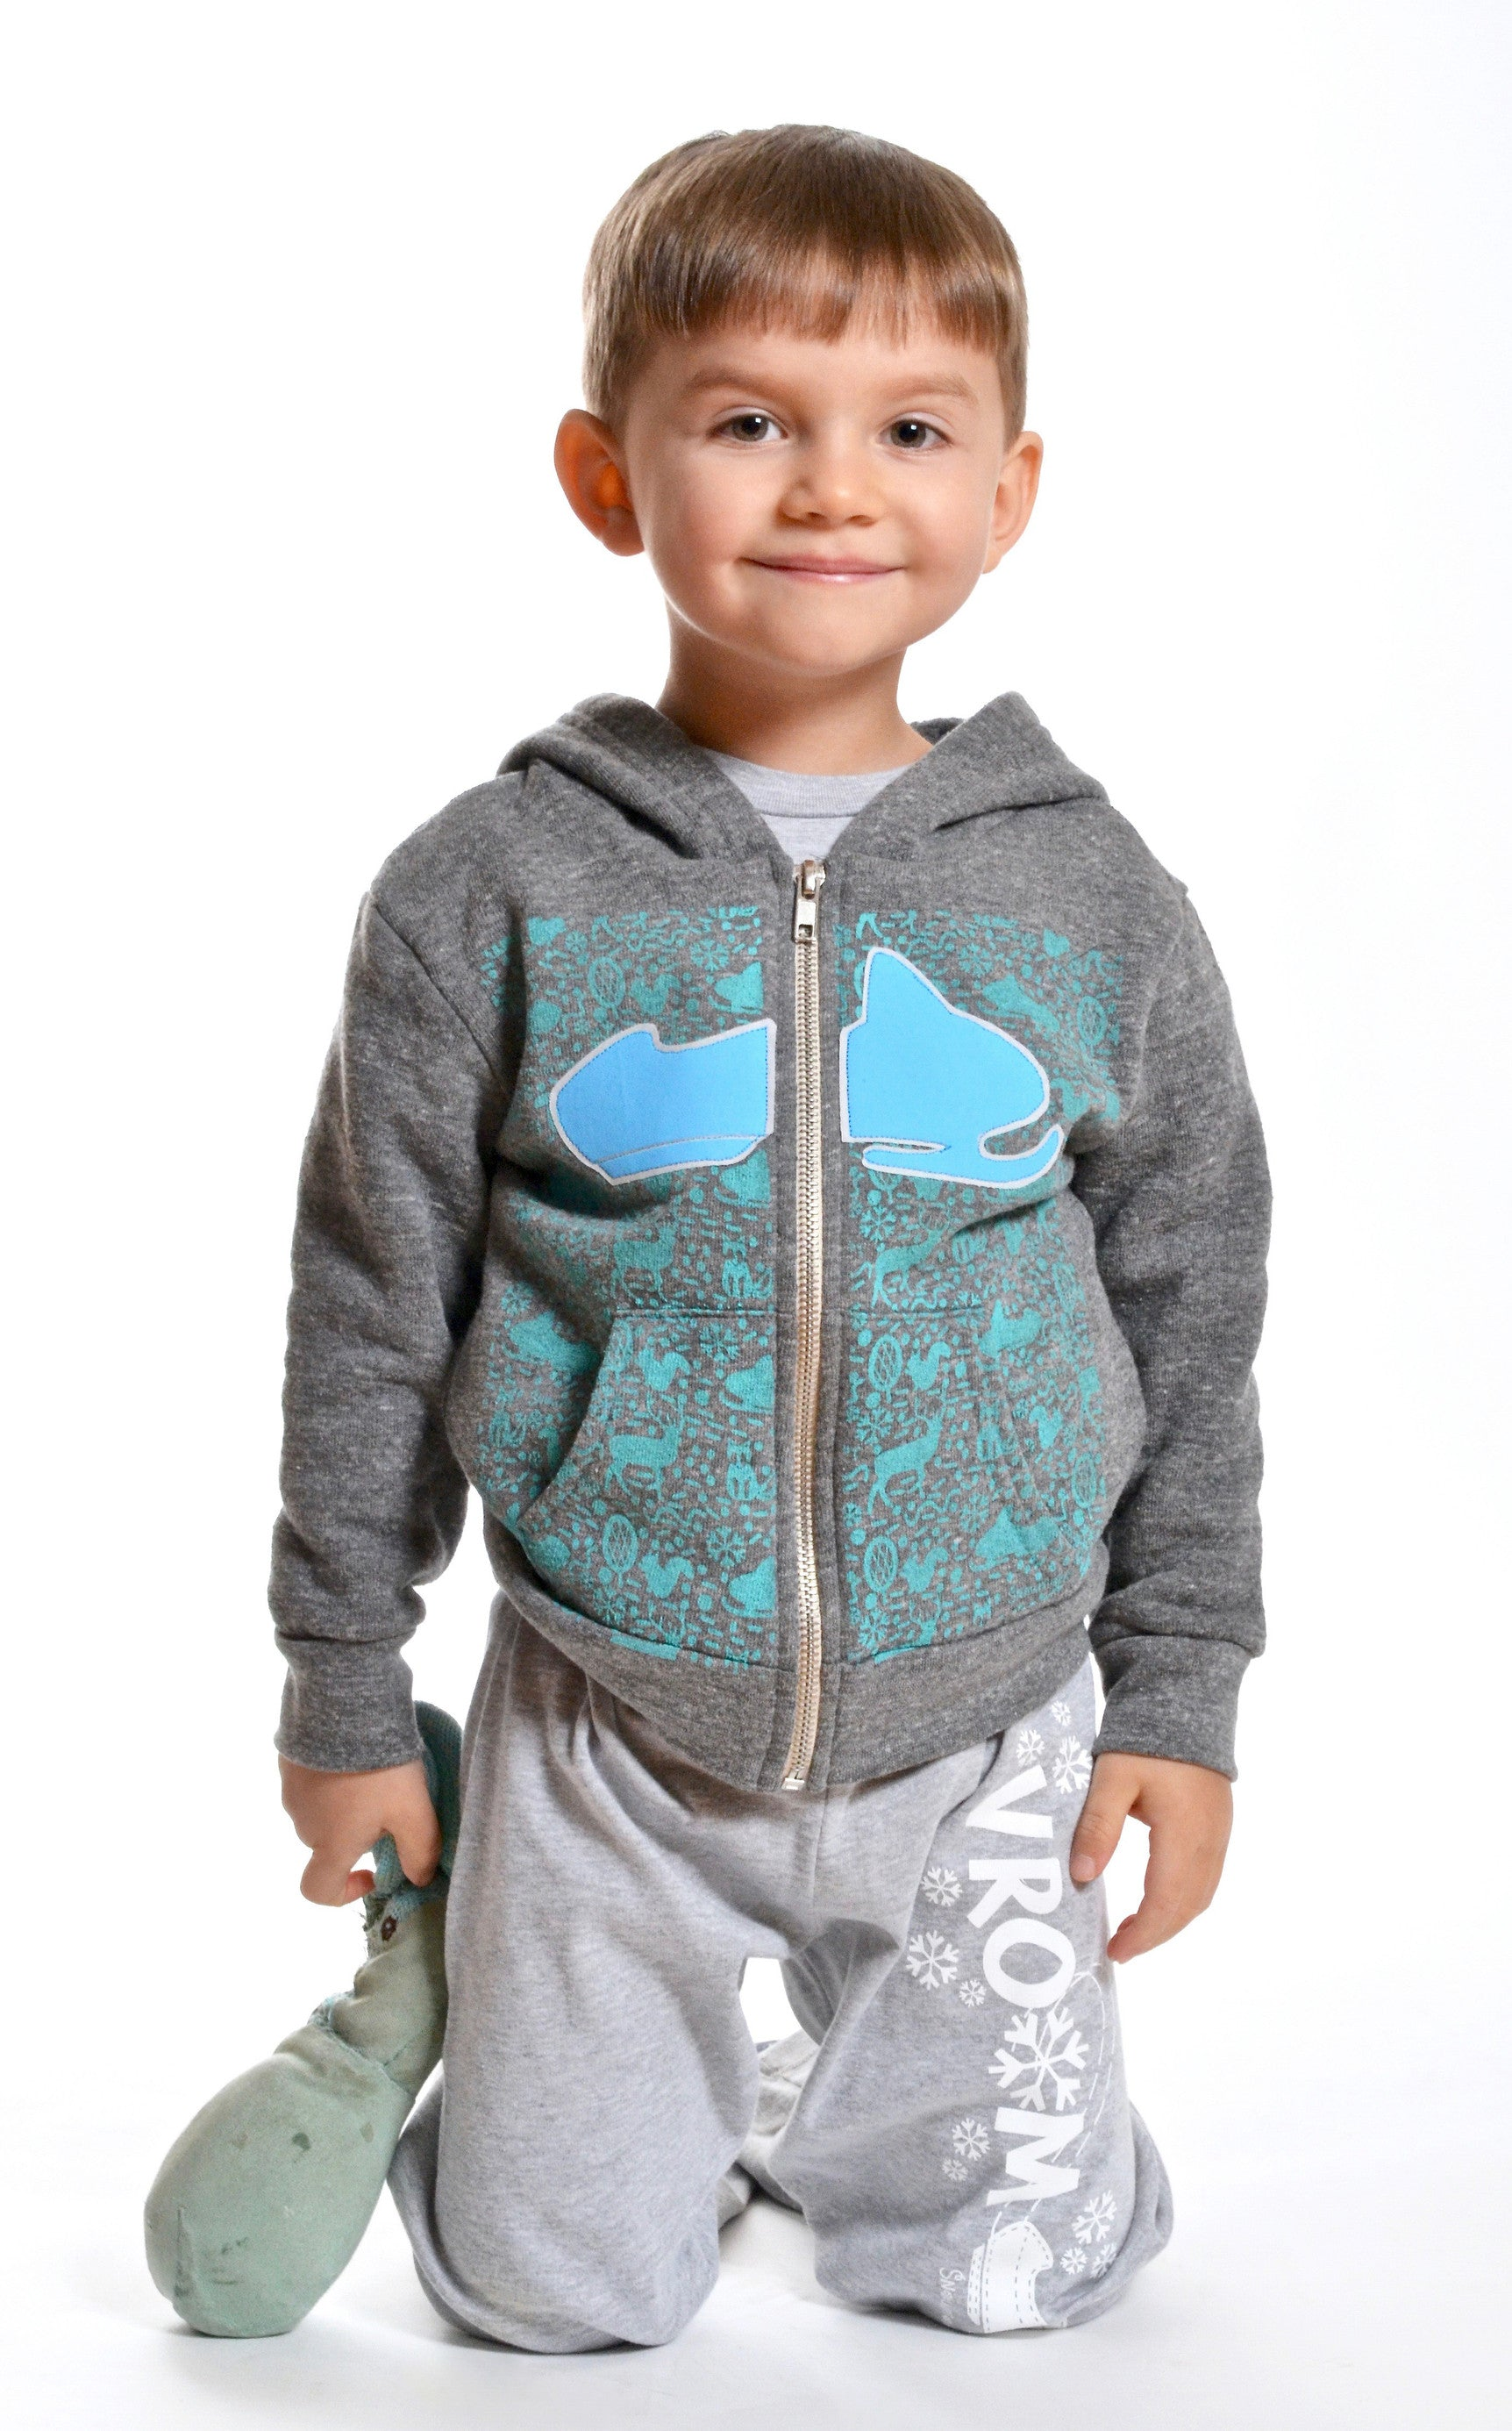 Kids hoodie, children's clothes hoodie, snowmobile hoodie, kids snowmobile hoodie, children's snowmobile hoodies, kids snowmobile hoody, kids snowmobile sweater, kids snowmobile sweaters, Snowmobaby, raising riders, made in USA, USA made, Unisex, boys, girls, baby boy, baby girl, snowmobile onesie, children's snowmobile onesie, snowmobile apparel, kids snowmobile casual wear, children's snowmobile clothes, snowmobile presents parents, baby shower snowmobile gifts, snowmobile baby, snowmobile baby clothes, snowmobile baby apparel, sled baby clothes, sled baby apparel, sled baby present, sled baby gifts, gift ideas for snowmobilers, gift ideas for sledders, gifts for motorheads, baby shower snowmobile gifts, snowmobile t-shirt, snowmobile tee, snowmobile apparel, kids snowmobile casual wear, kids snowmobile clothes, children's snowmobile clothes, children's snowmobile t-shirt, snowmobile presents parents, snowmobile gifts, kids snowmobile gifts, great ideas for snowmobile kids, gift ideas for snowmobilers, gift ideas for sledders, gifts for motorheads, toddler snowmobile clothes, toddler snowmobile apparel, toddler sled gear, snowmobile toddler gift ideas